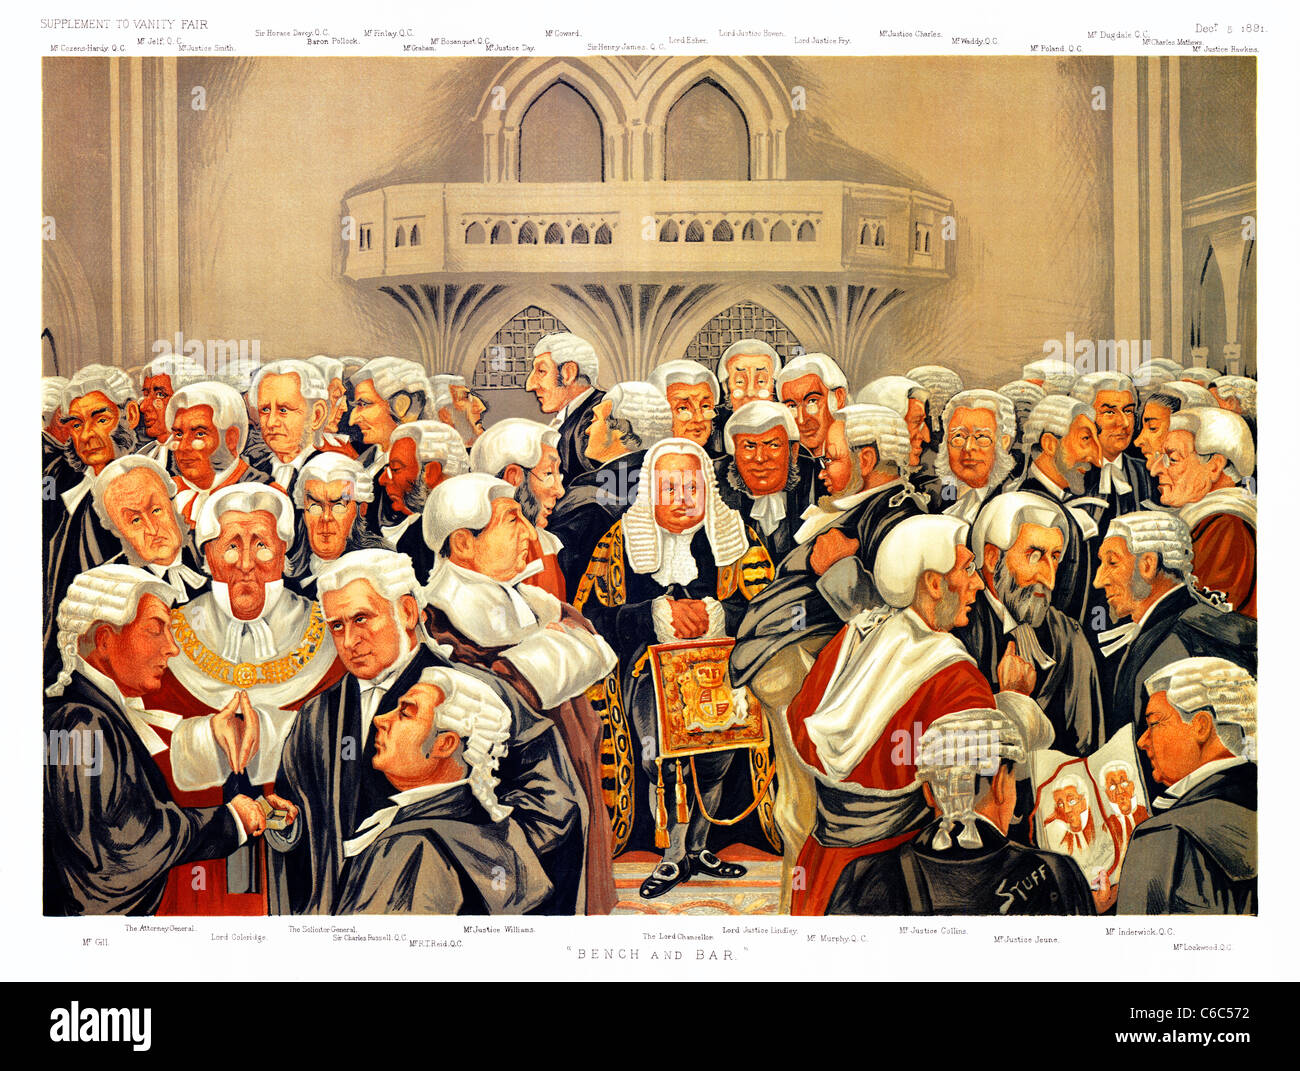 Bench and Bar, 1891 cartoon by Stuff for Vanity Fair with the principal lawyers and judges of England - Stock Image